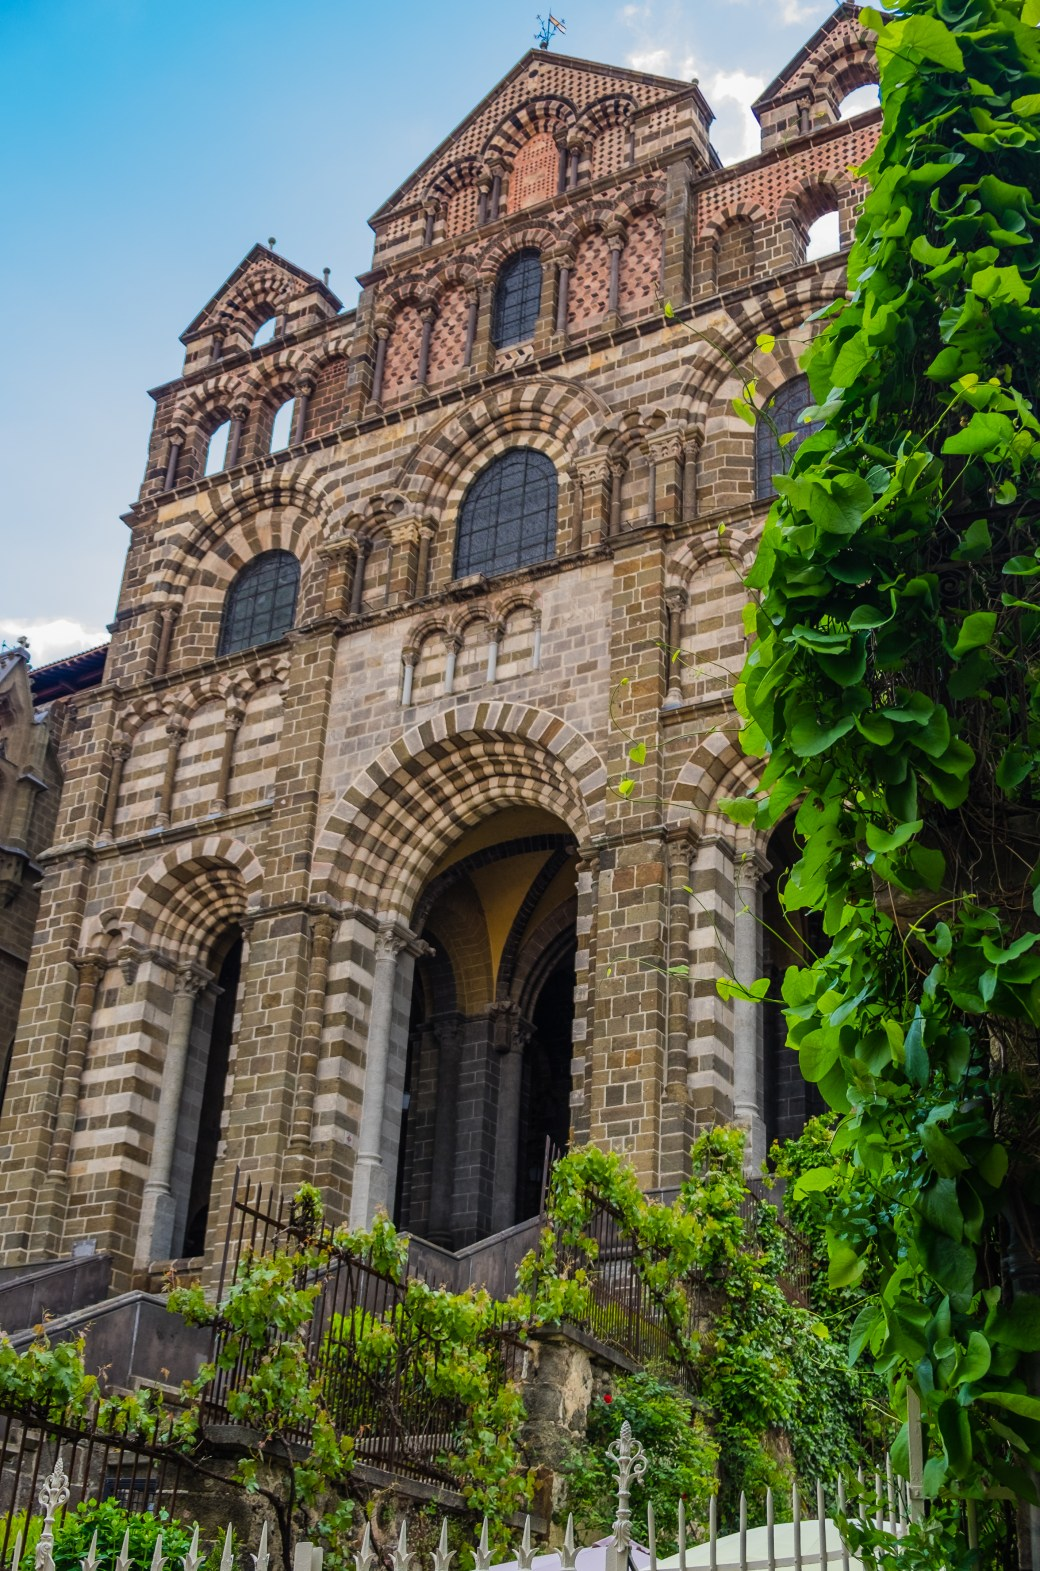 Cathedral at Le Puy en Velay